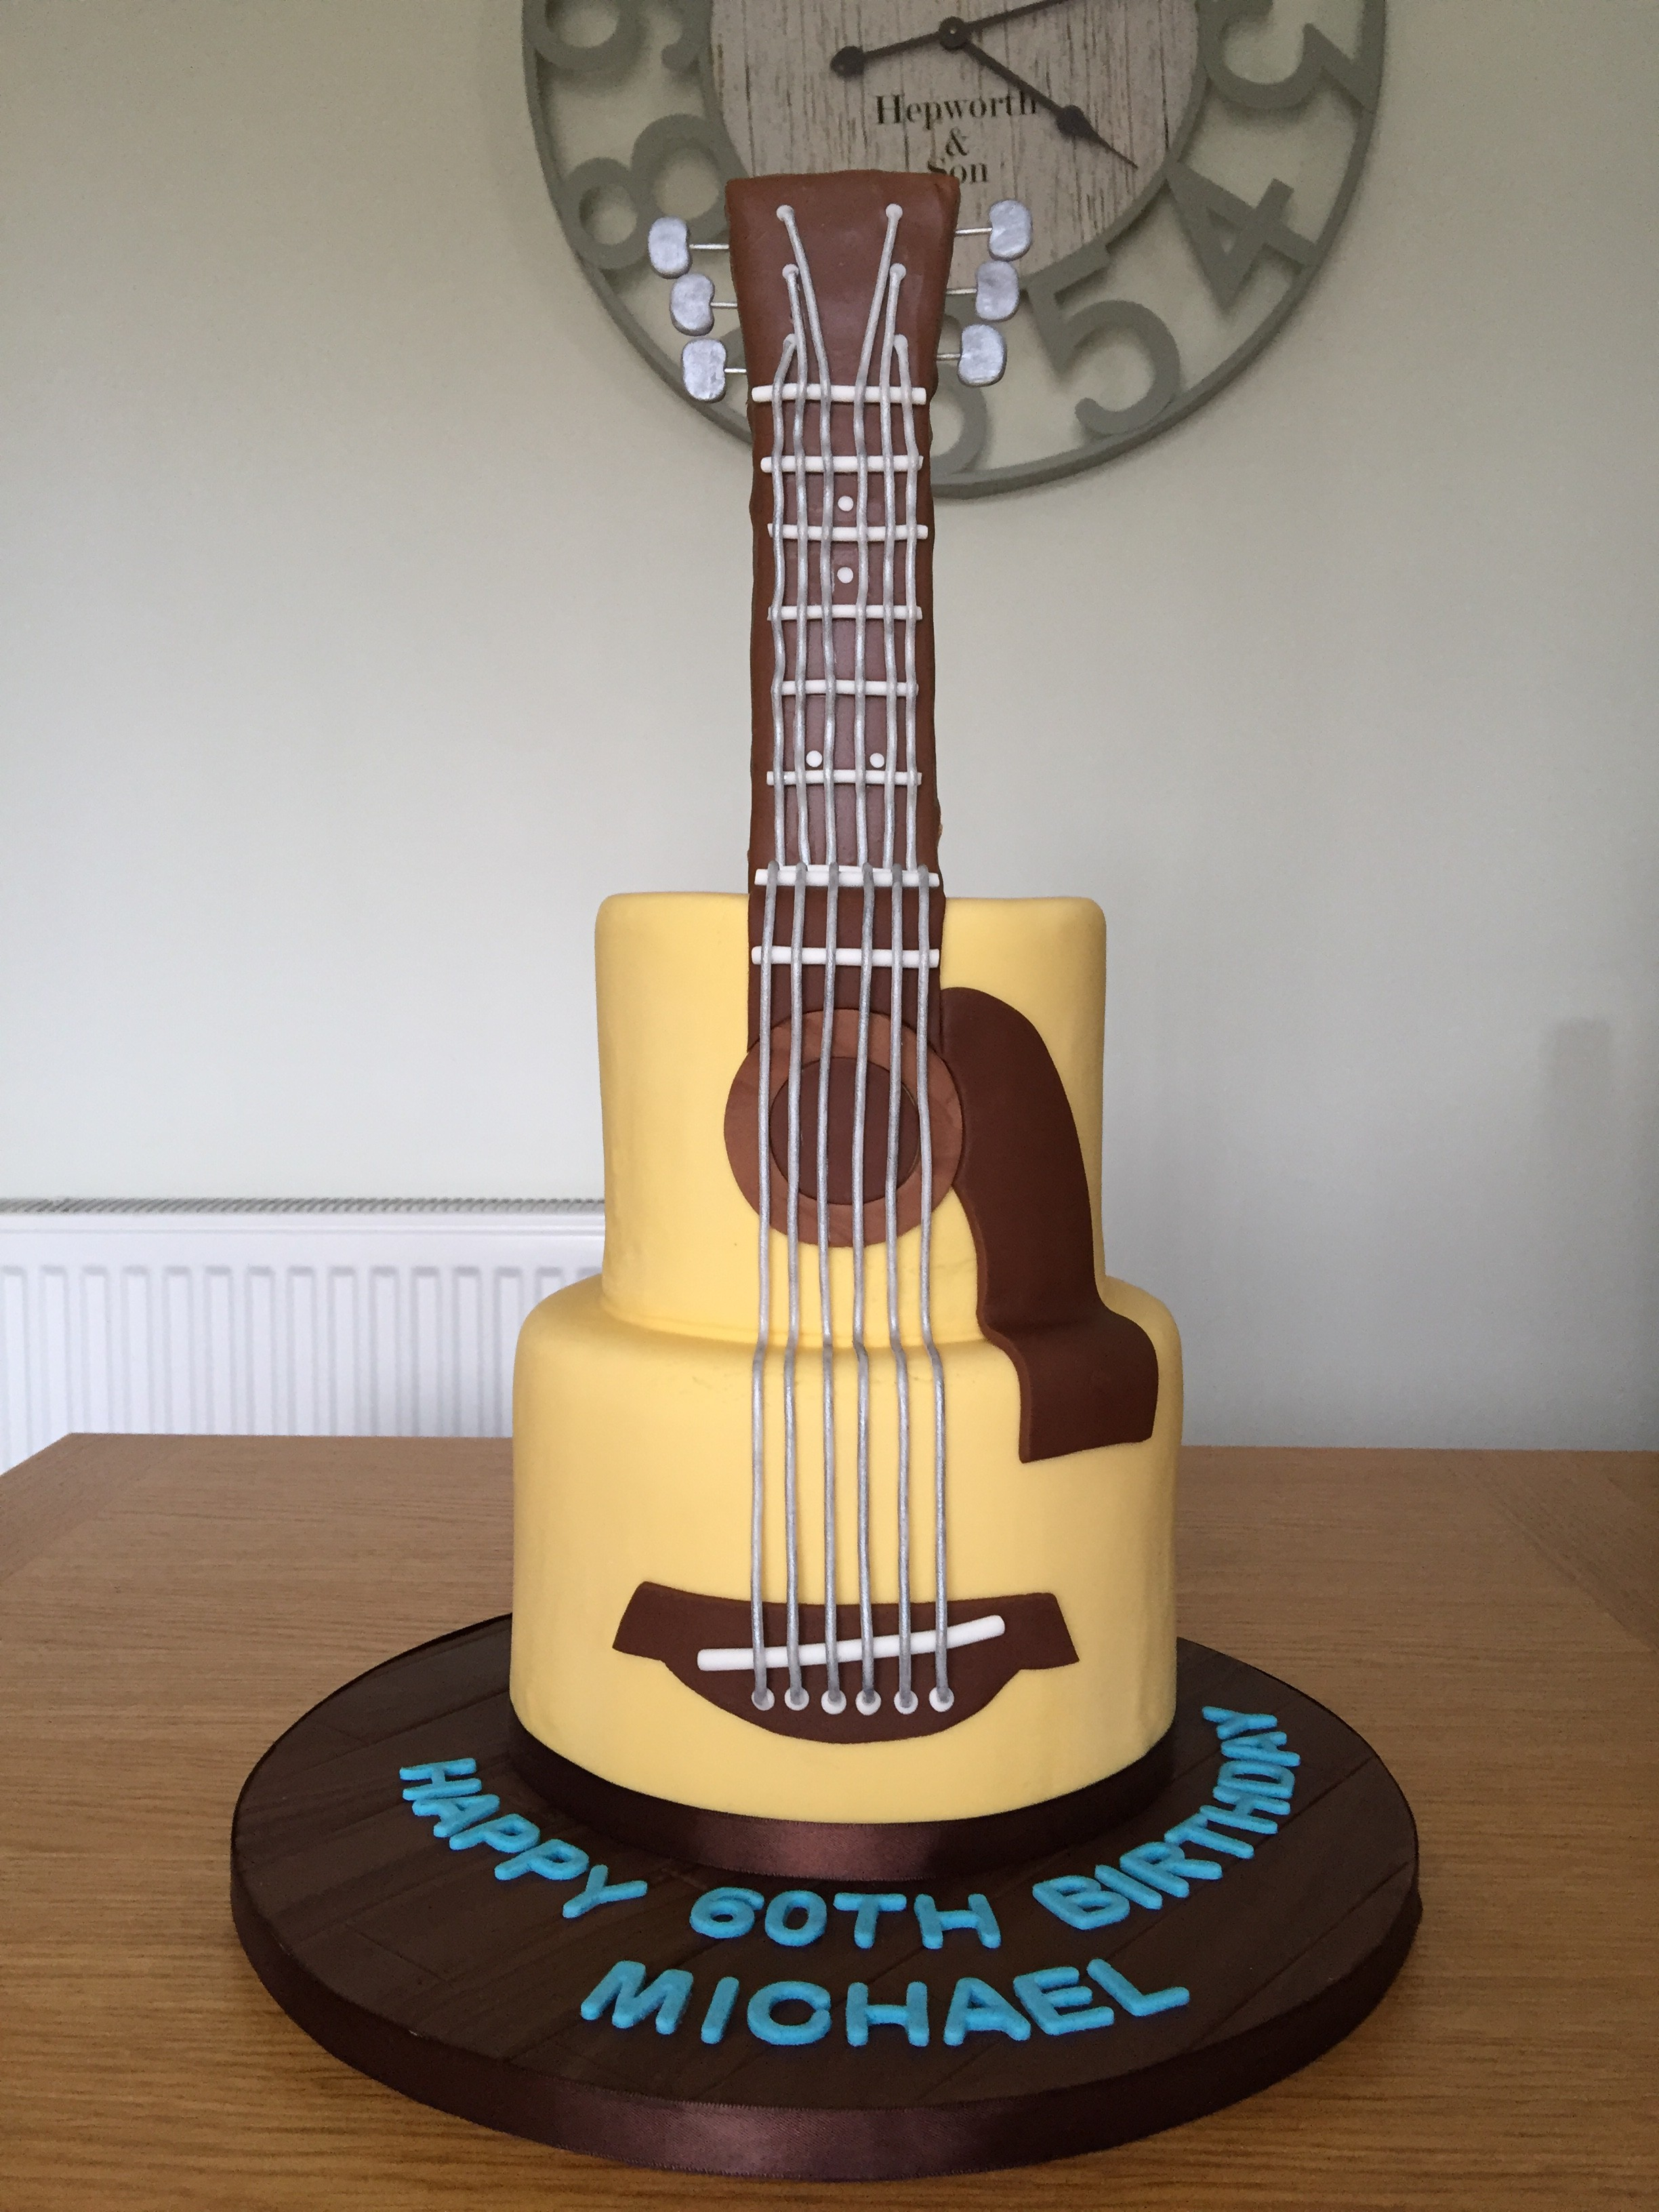 The finished guitar cake